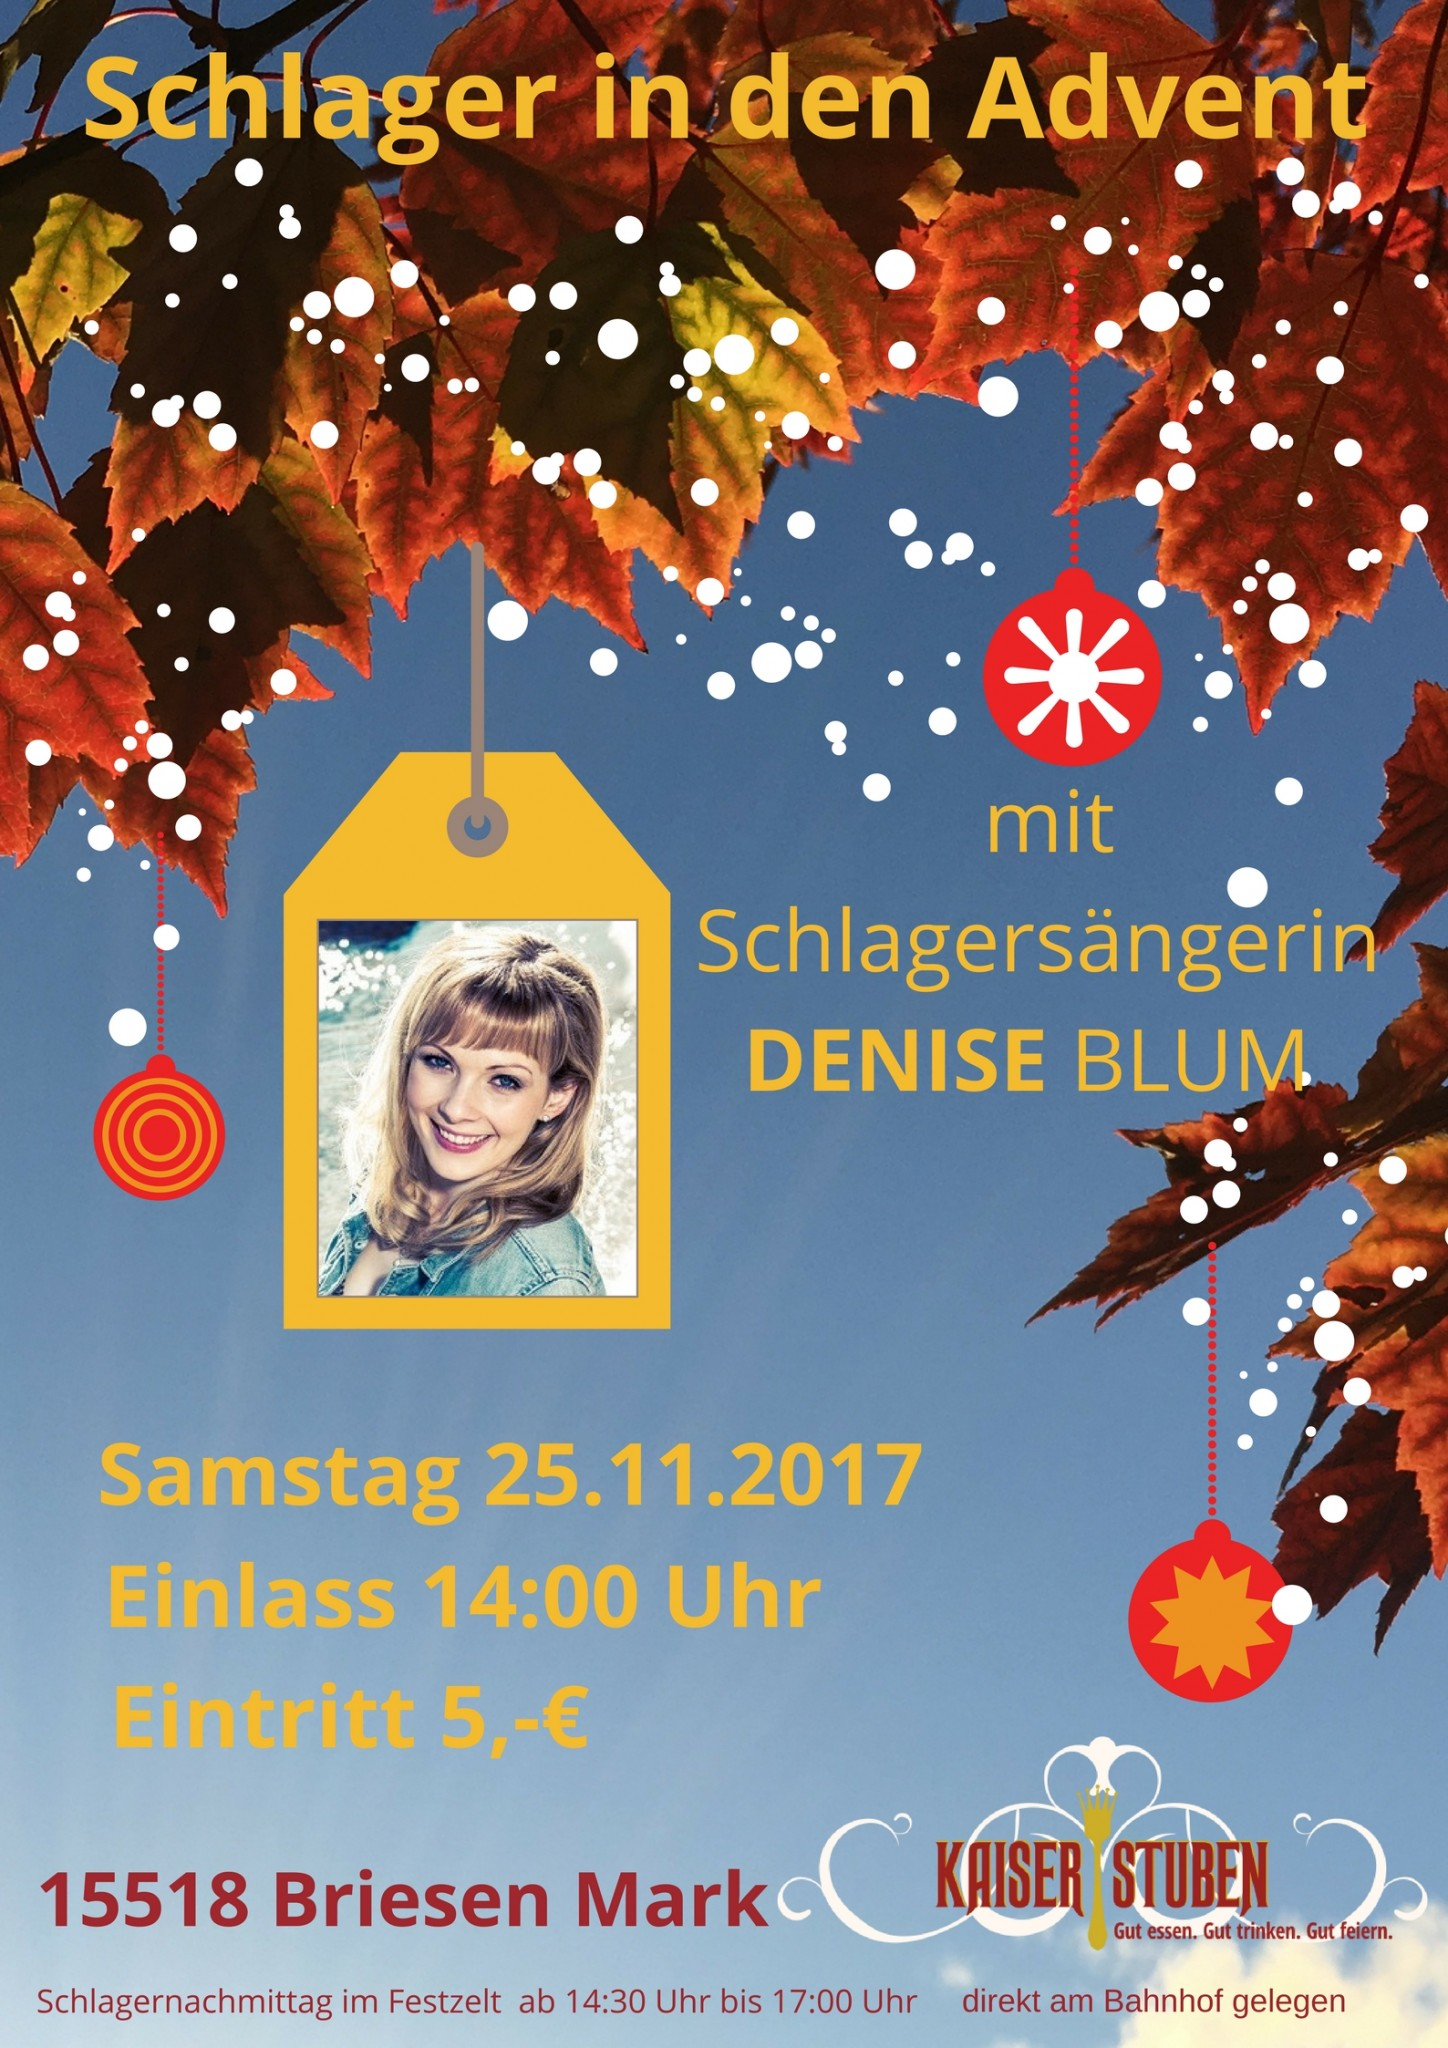 Schlager in den Advent